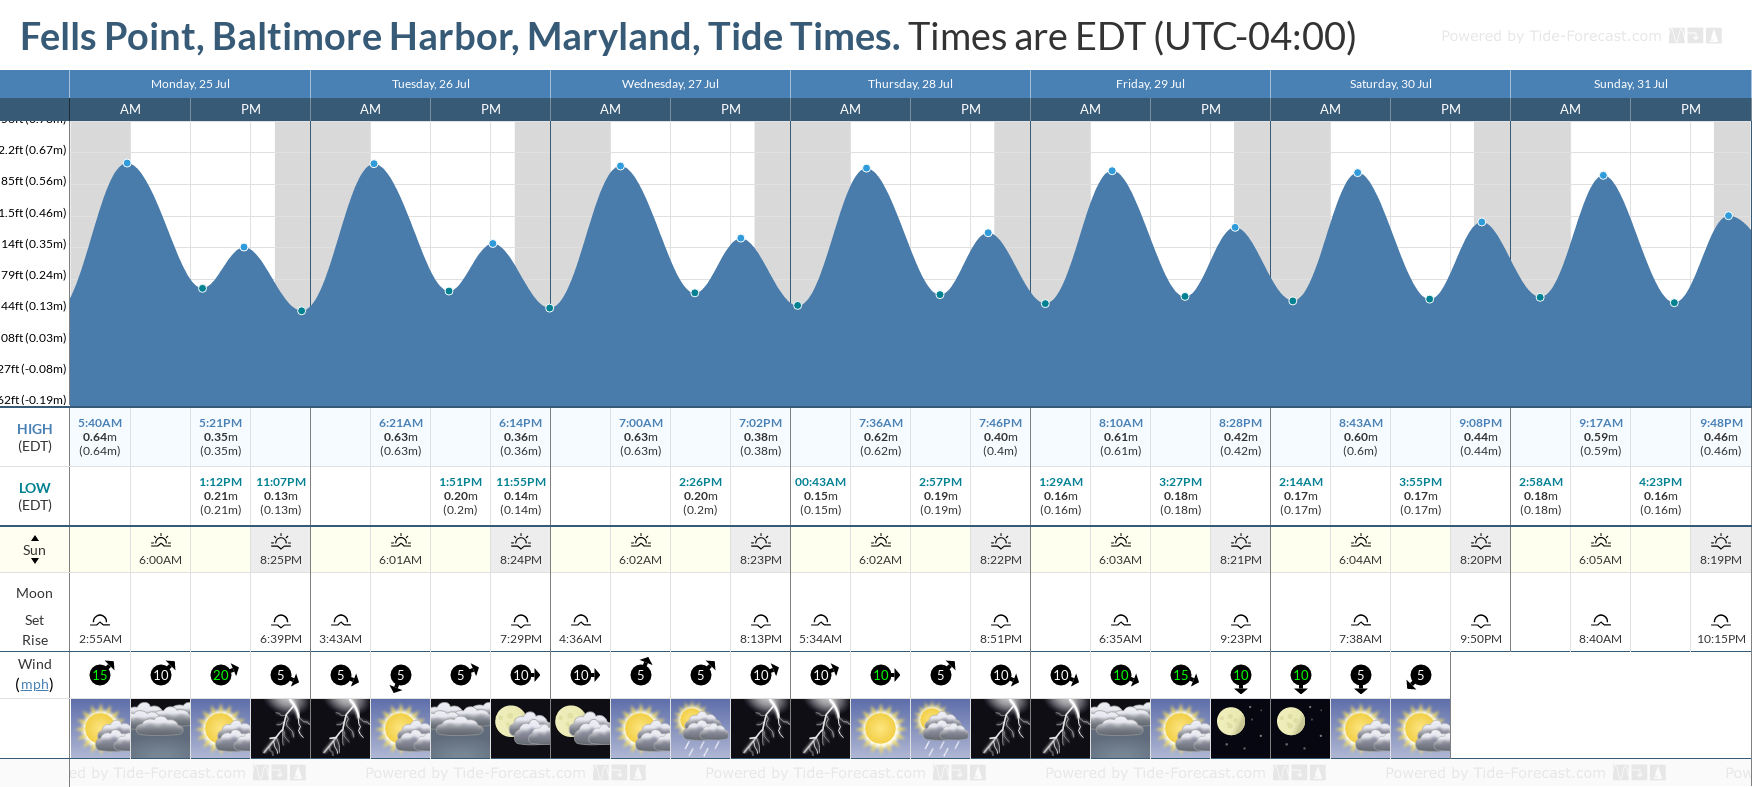 Fells Point, Baltimore Harbor, Maryland Tide Chart including high and low tide tide times for the next 7 days